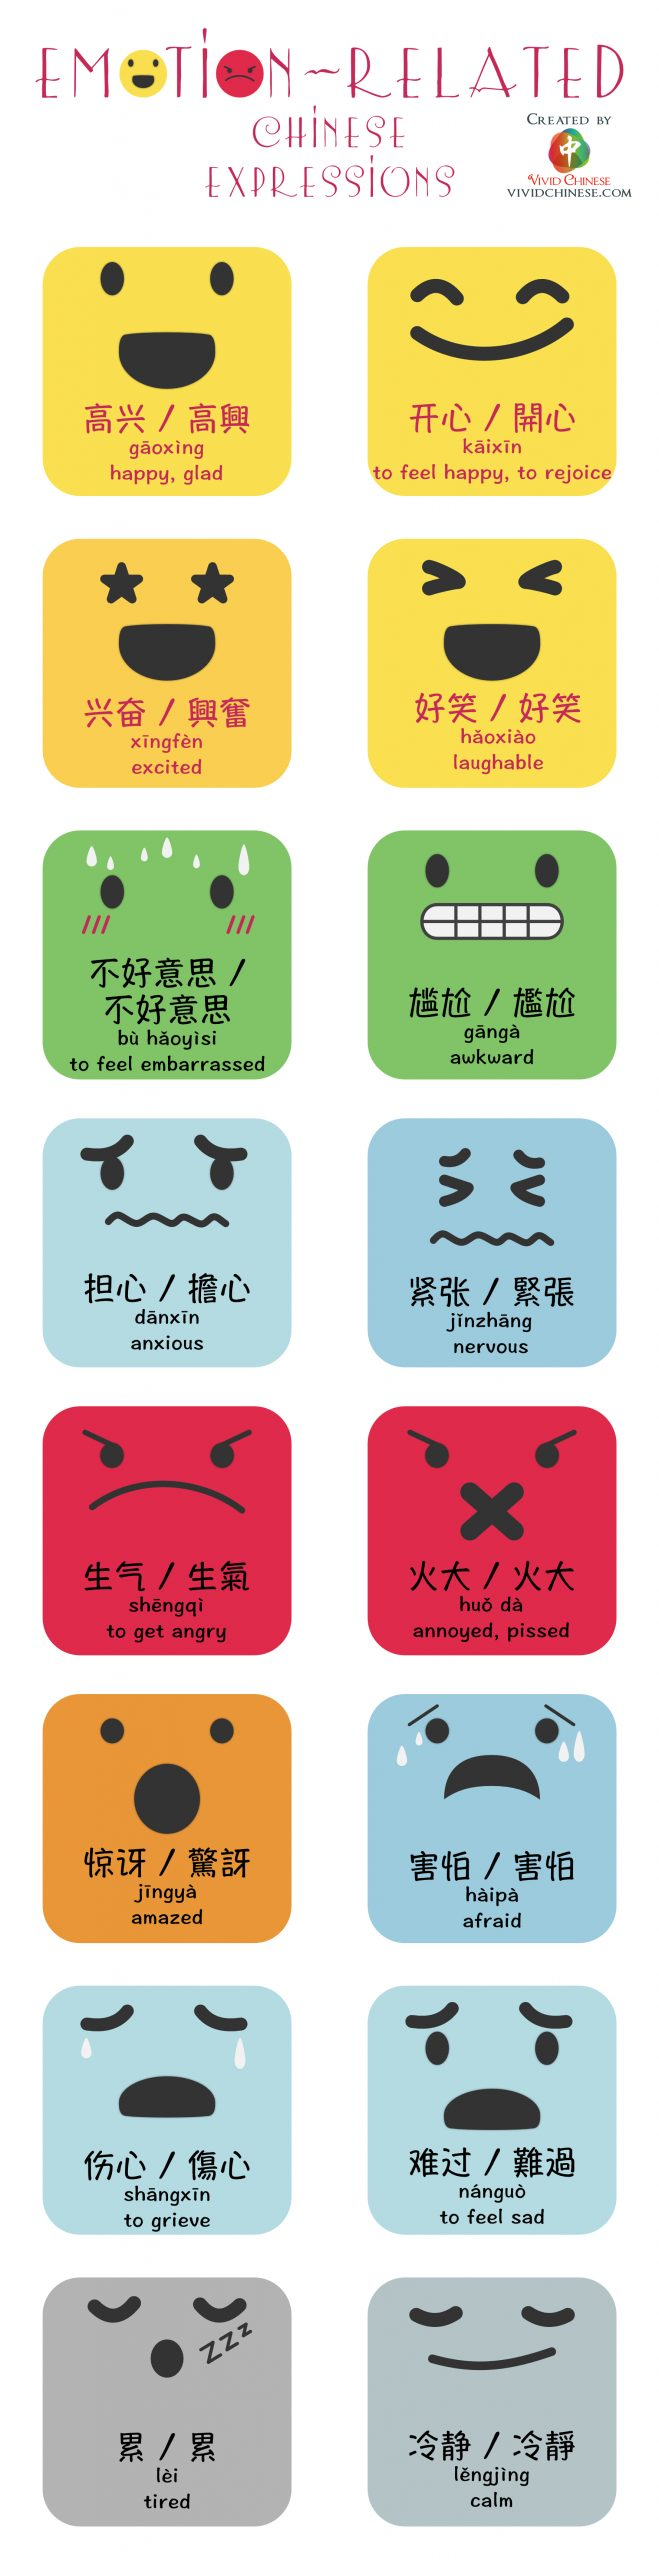 Chinese expression emotion